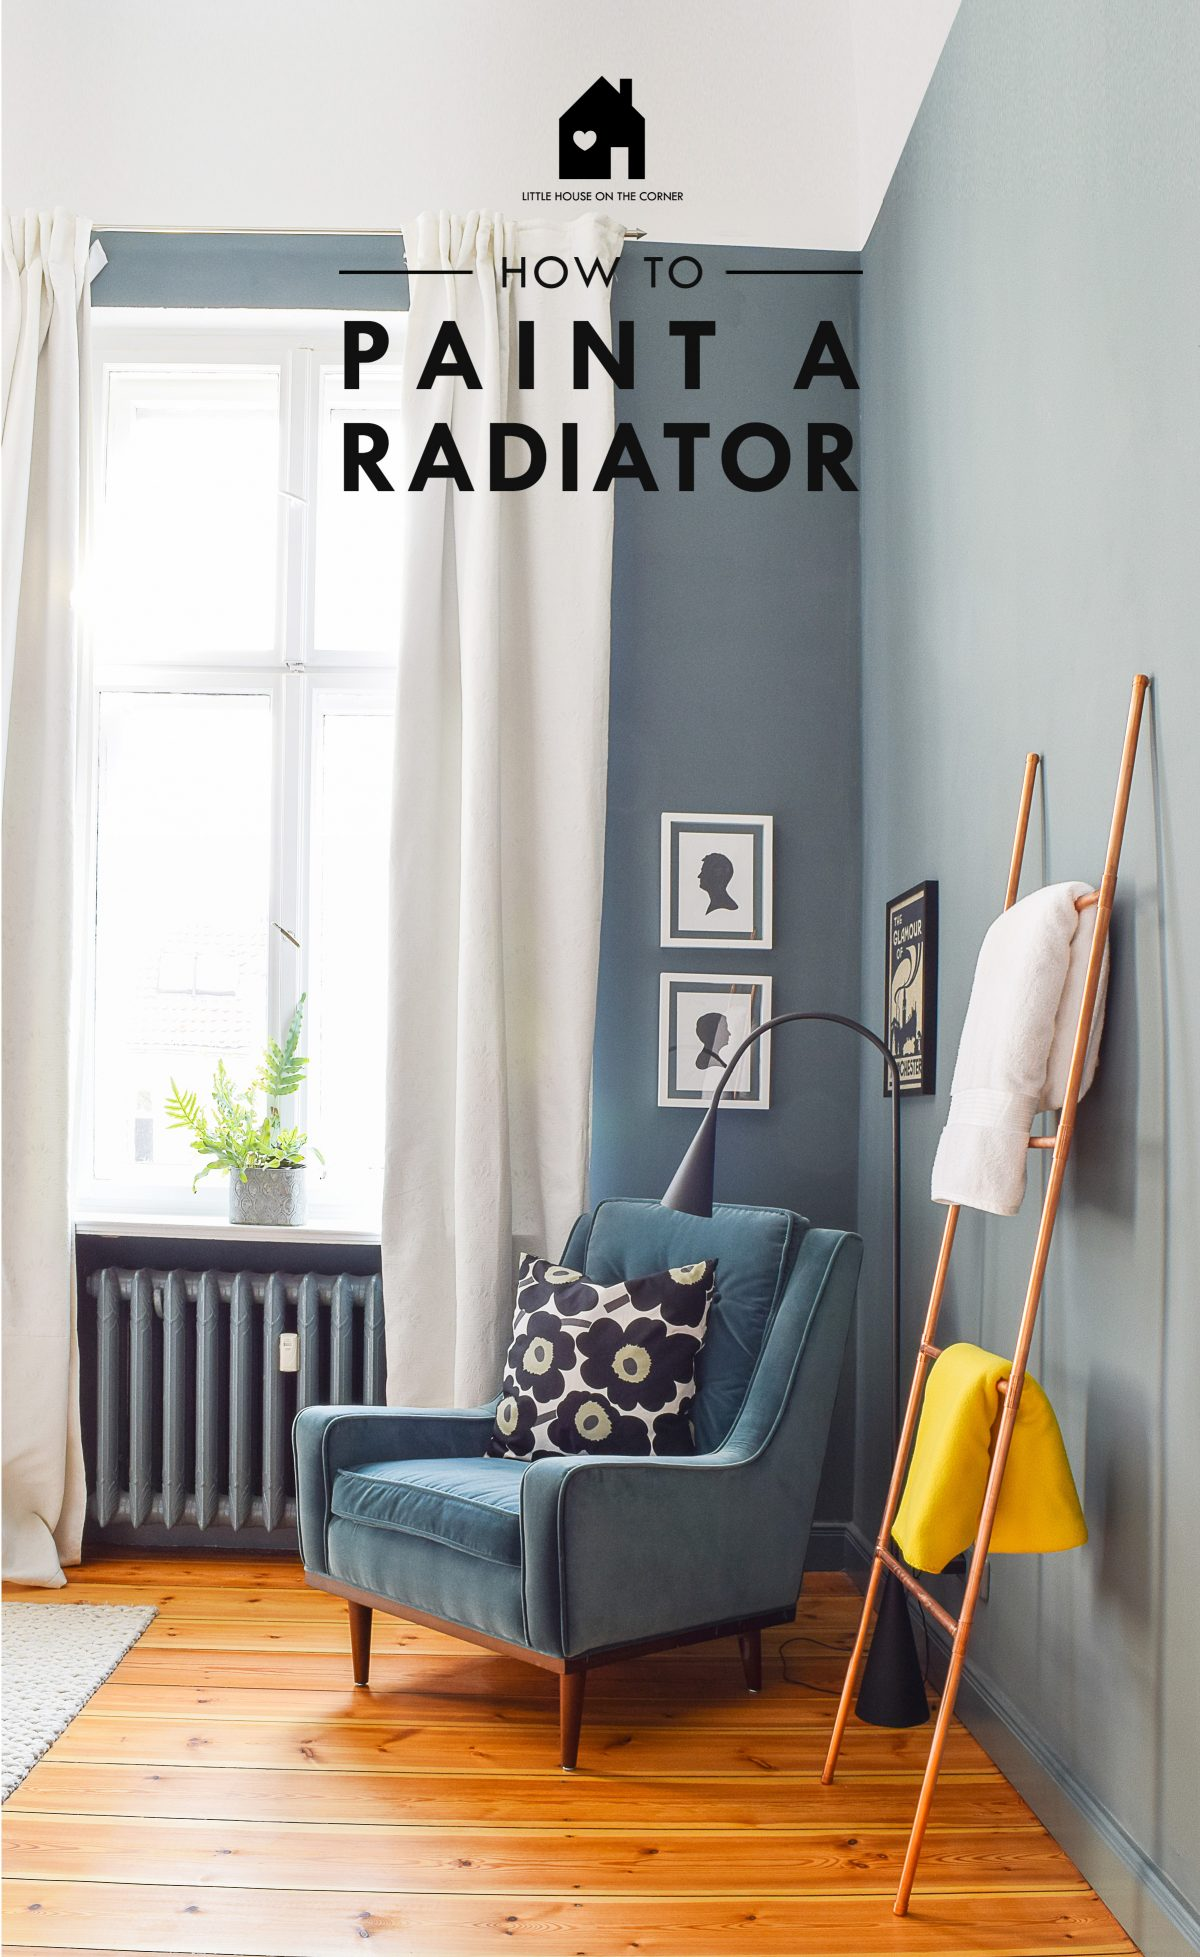 DIY Guide - How To Paint A Radiator | Little House On The Corner